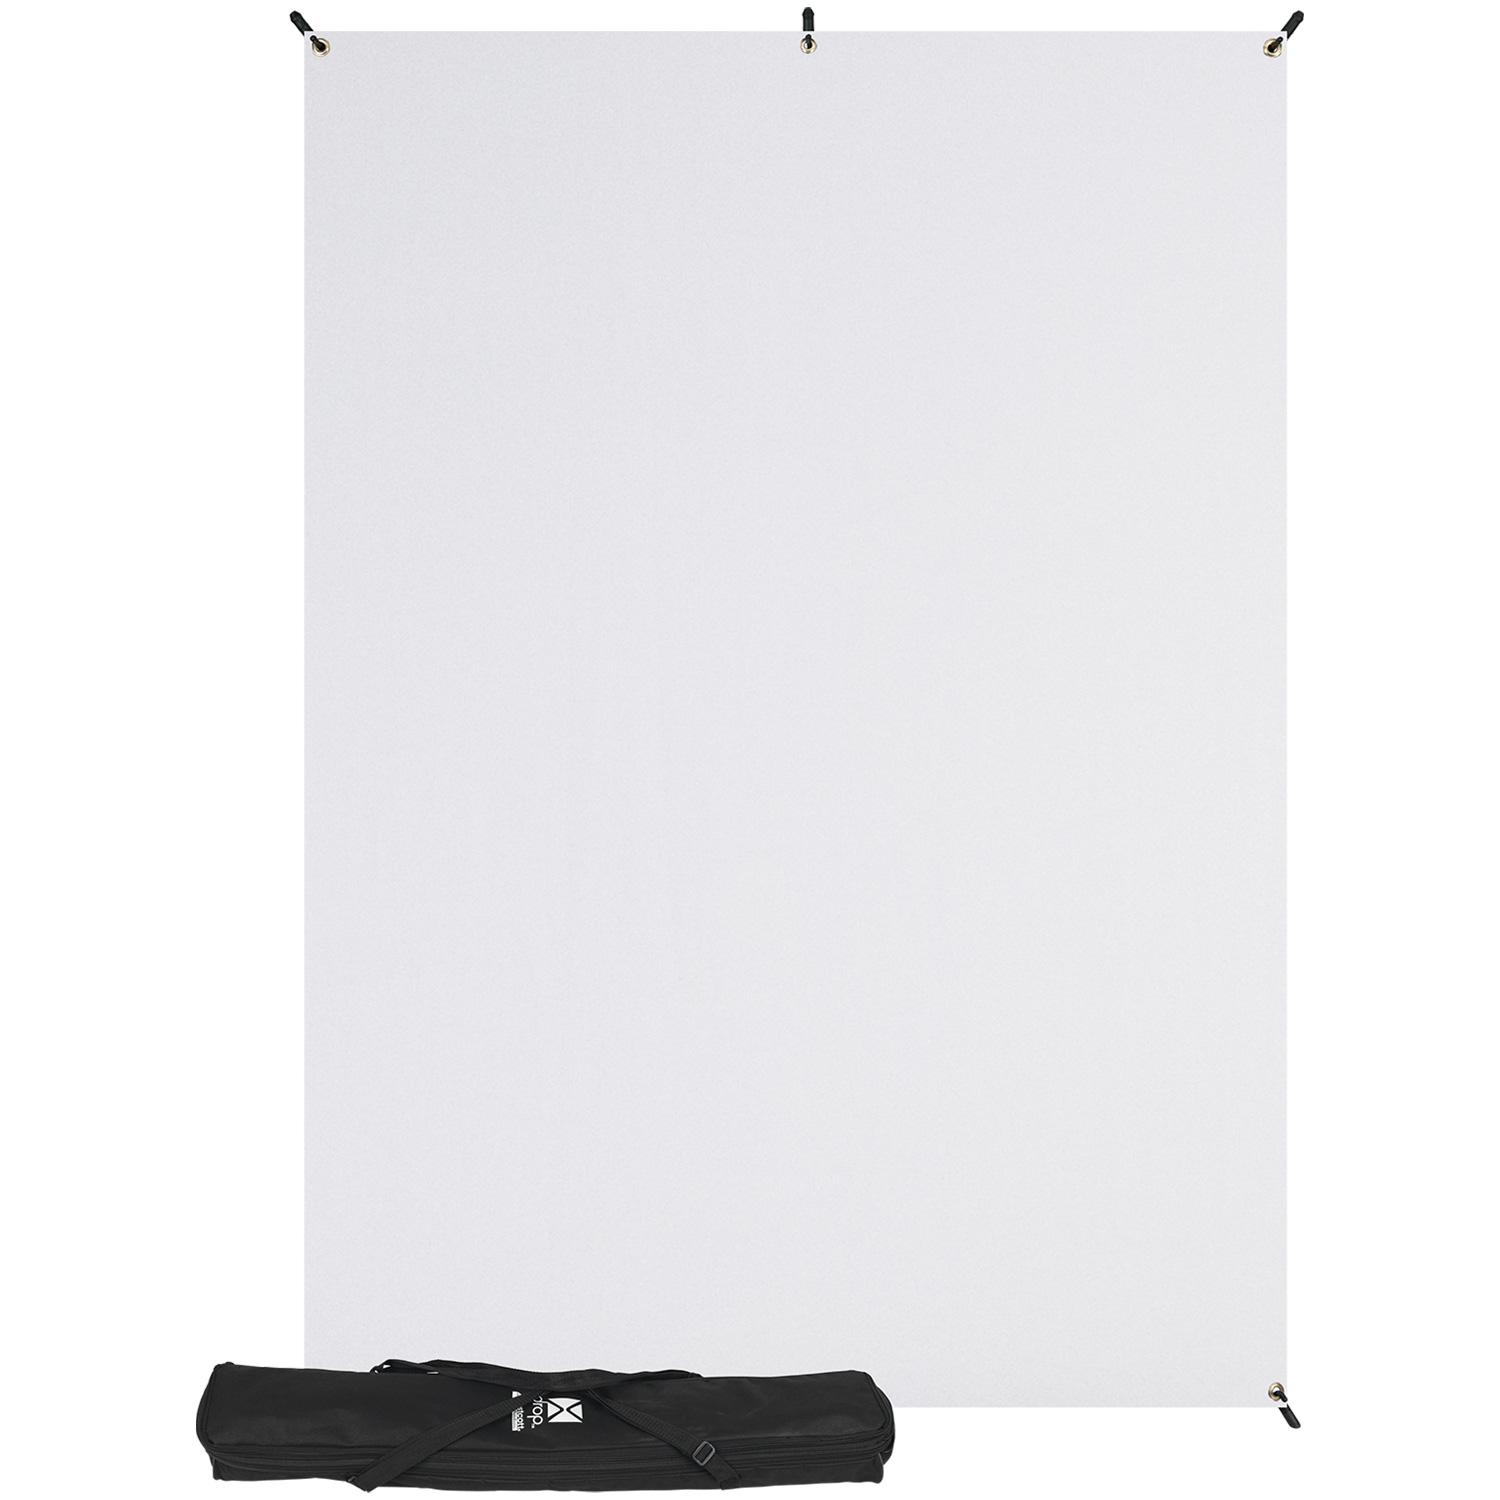 X-Drop Wrinkle-Resistant Backdrop - High-Key White Kit (5' x 7')